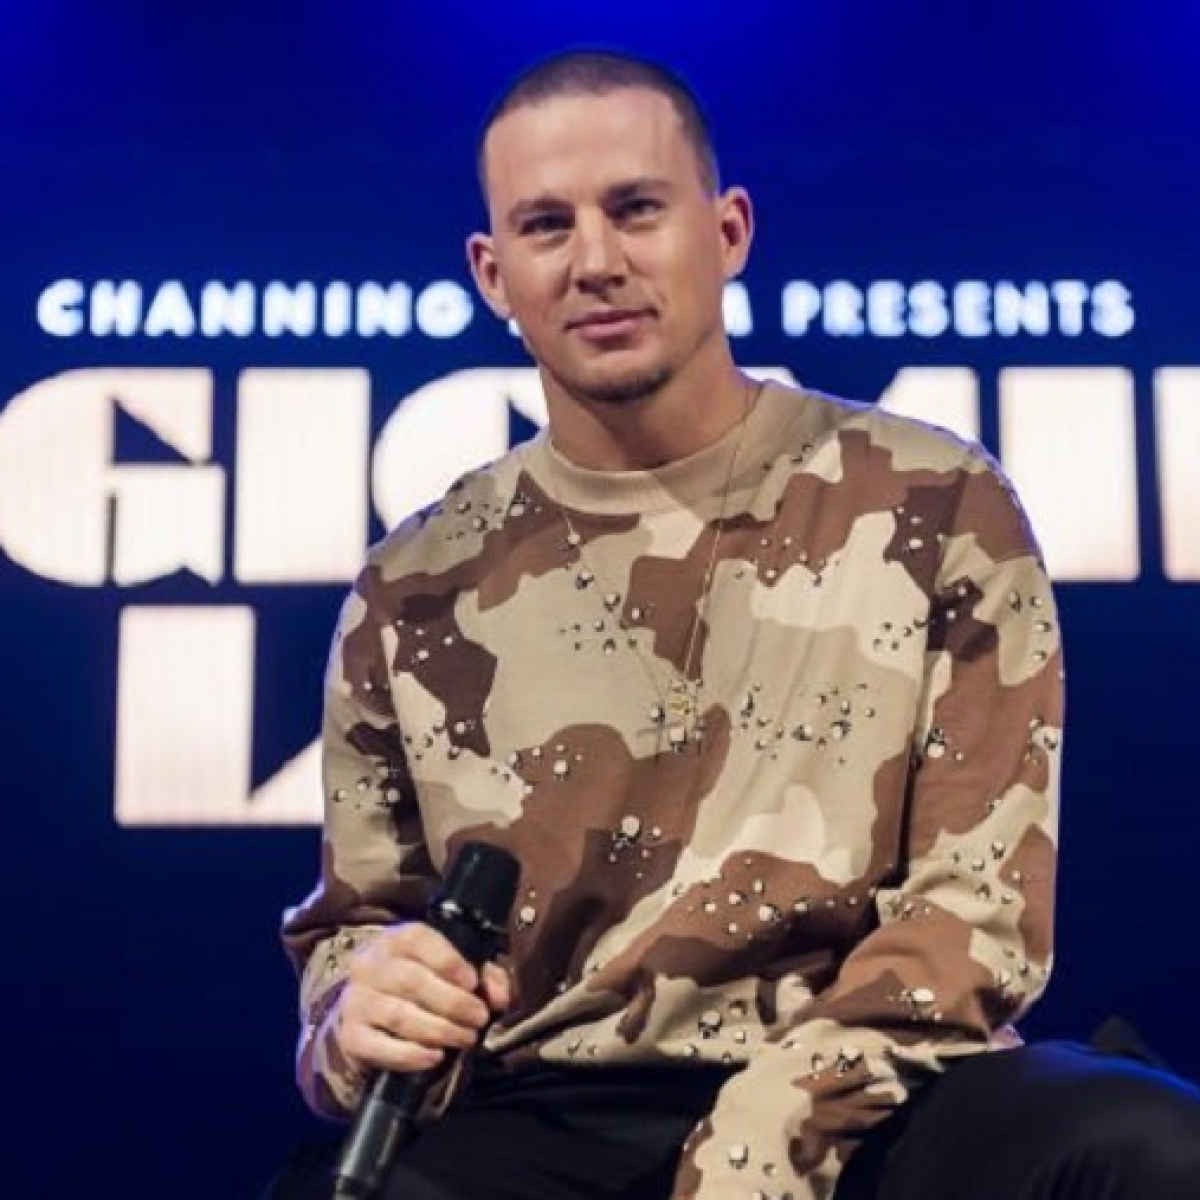 HBO, Channing Tatum to make limited series on Elon Musk's SpaceX